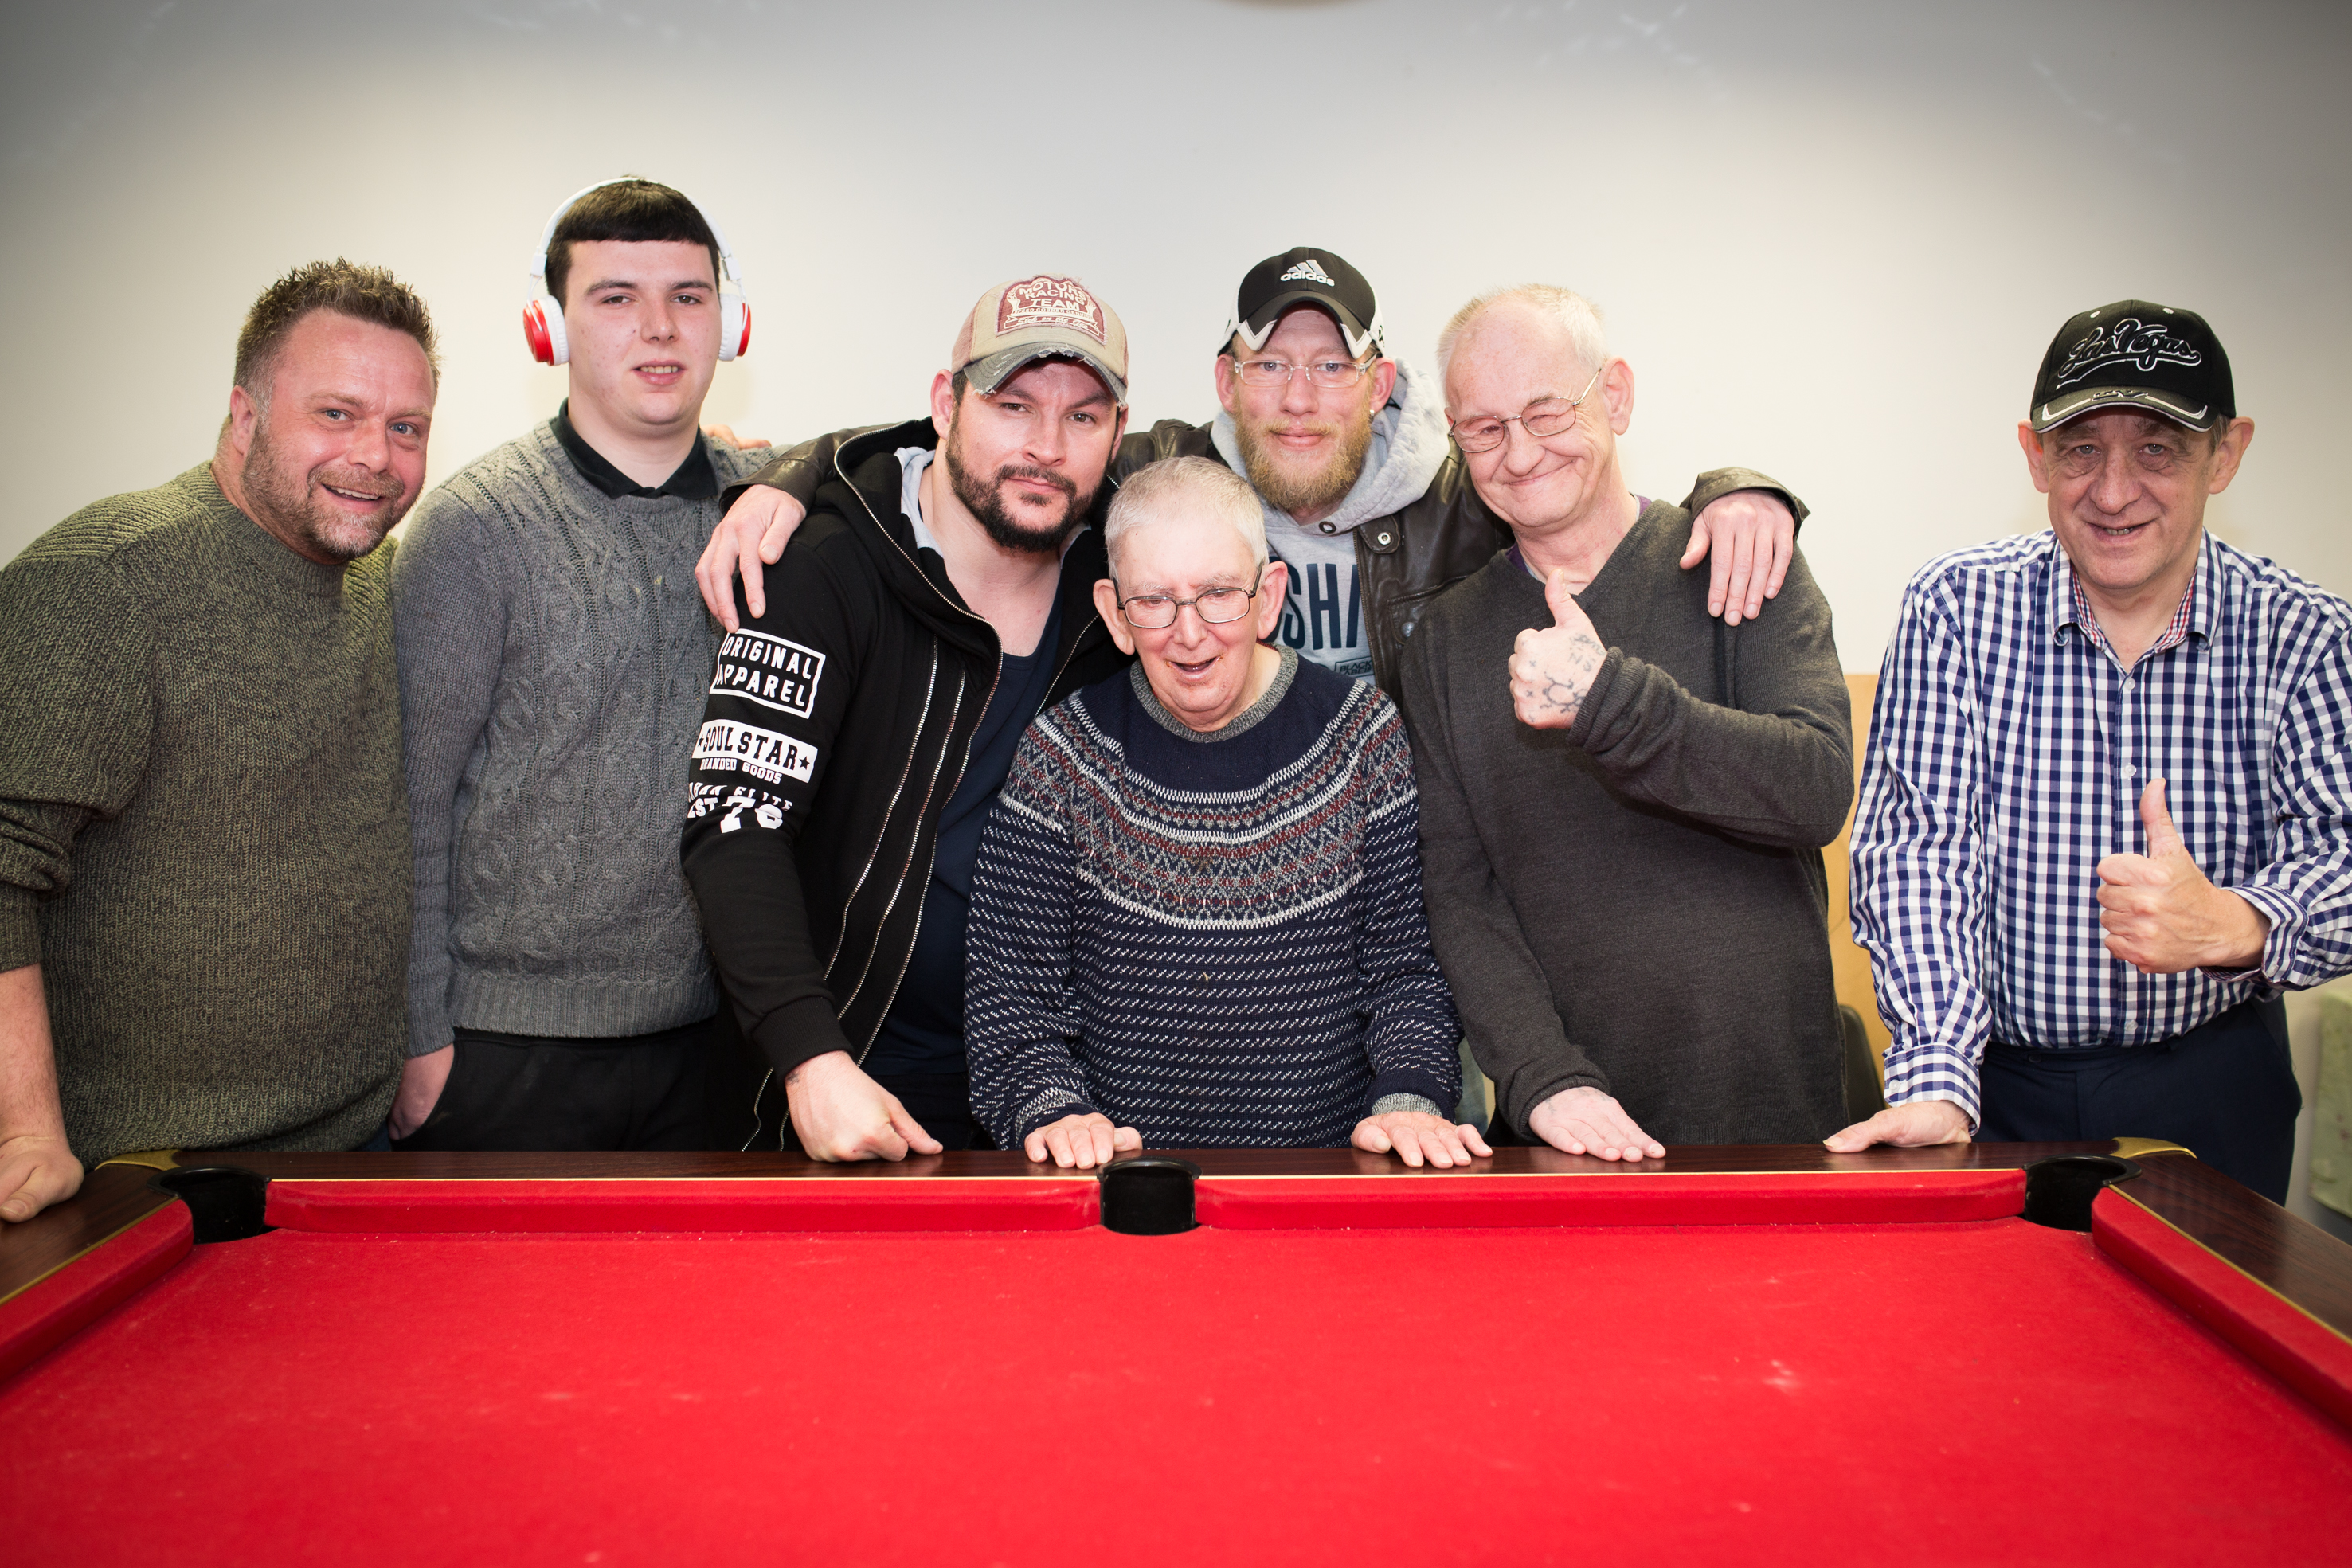 Image of service users at pool table